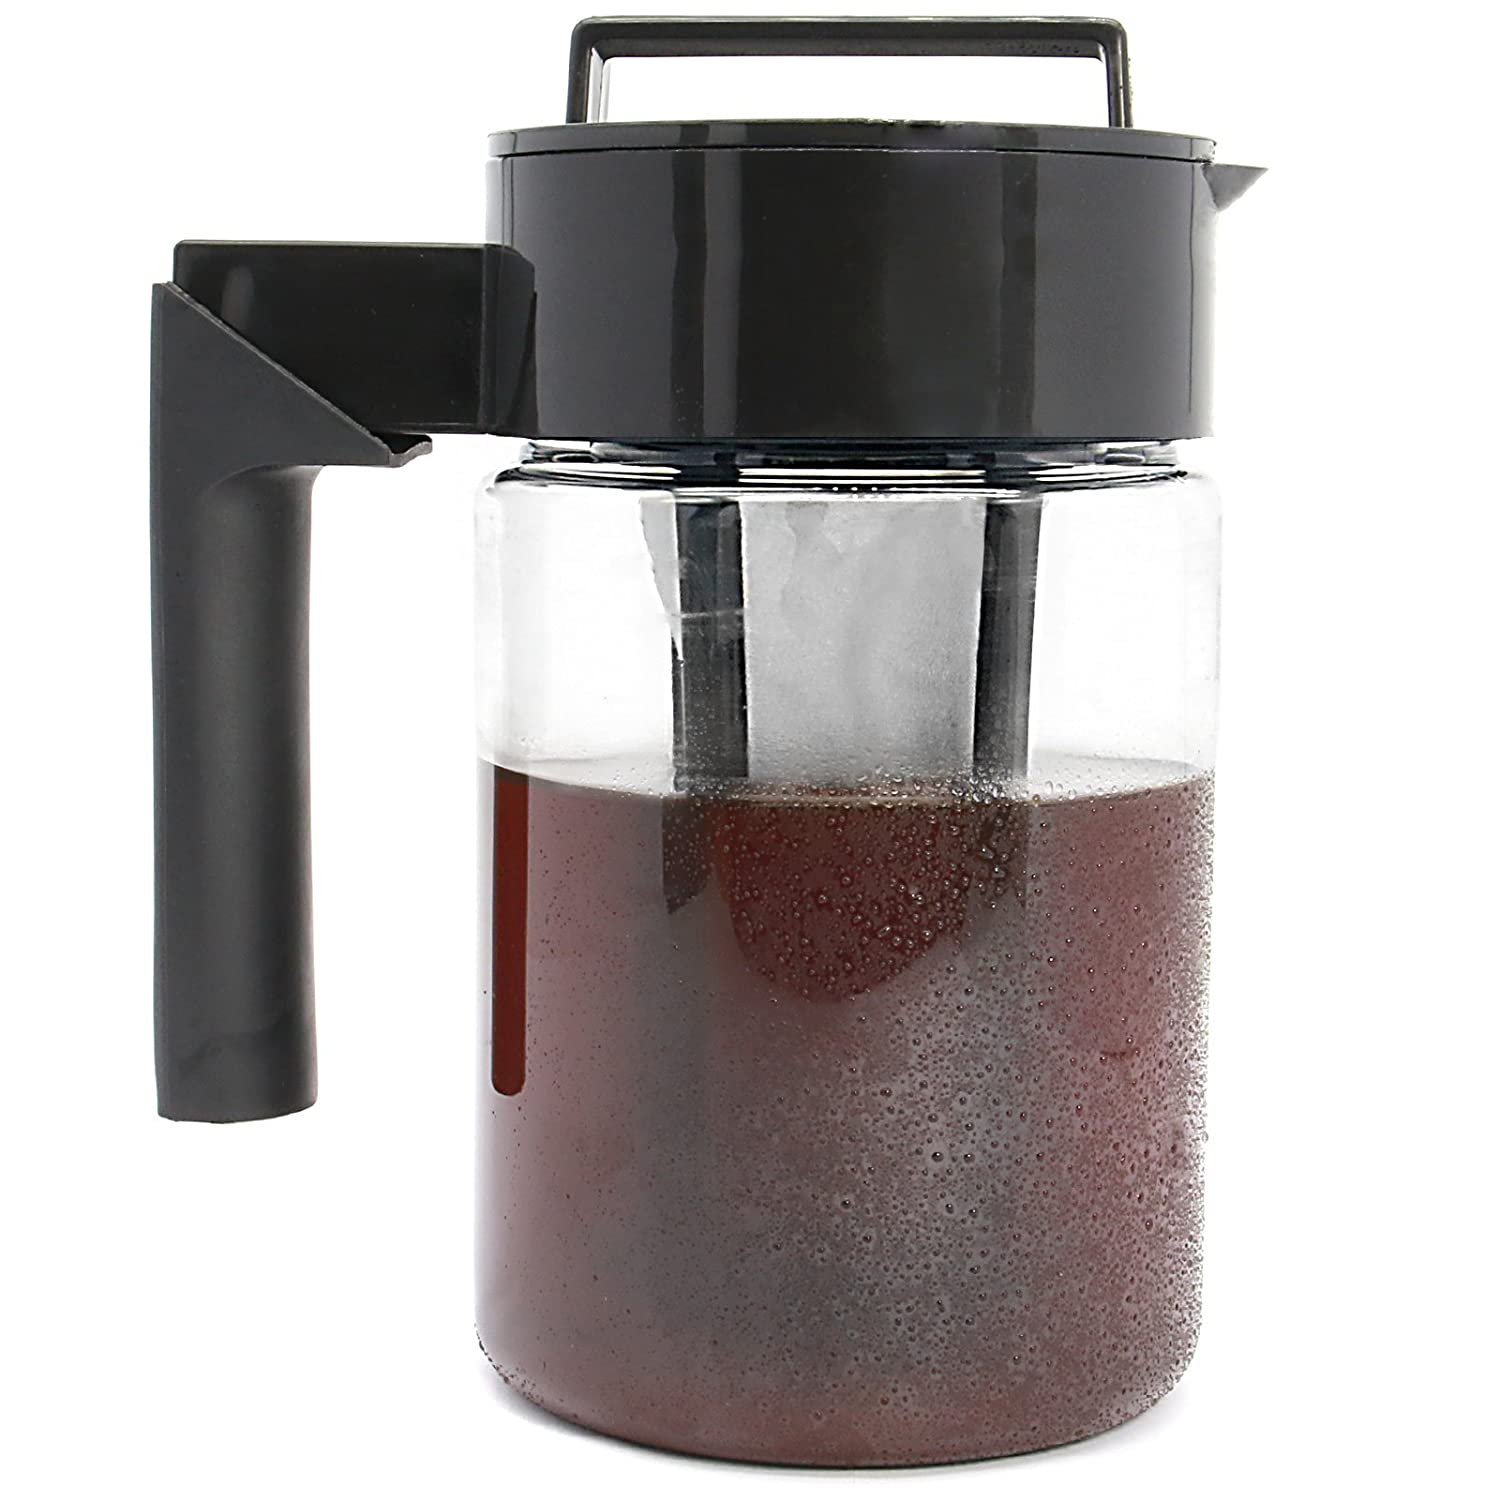 Iced Tea and Coffee Maker | Cold Brew Fridge Stored Pitcher Filter for Water Infusion | Fine Mesh Quality Filter | Airtight Silicone Seal | M&W (900ml) Xbite